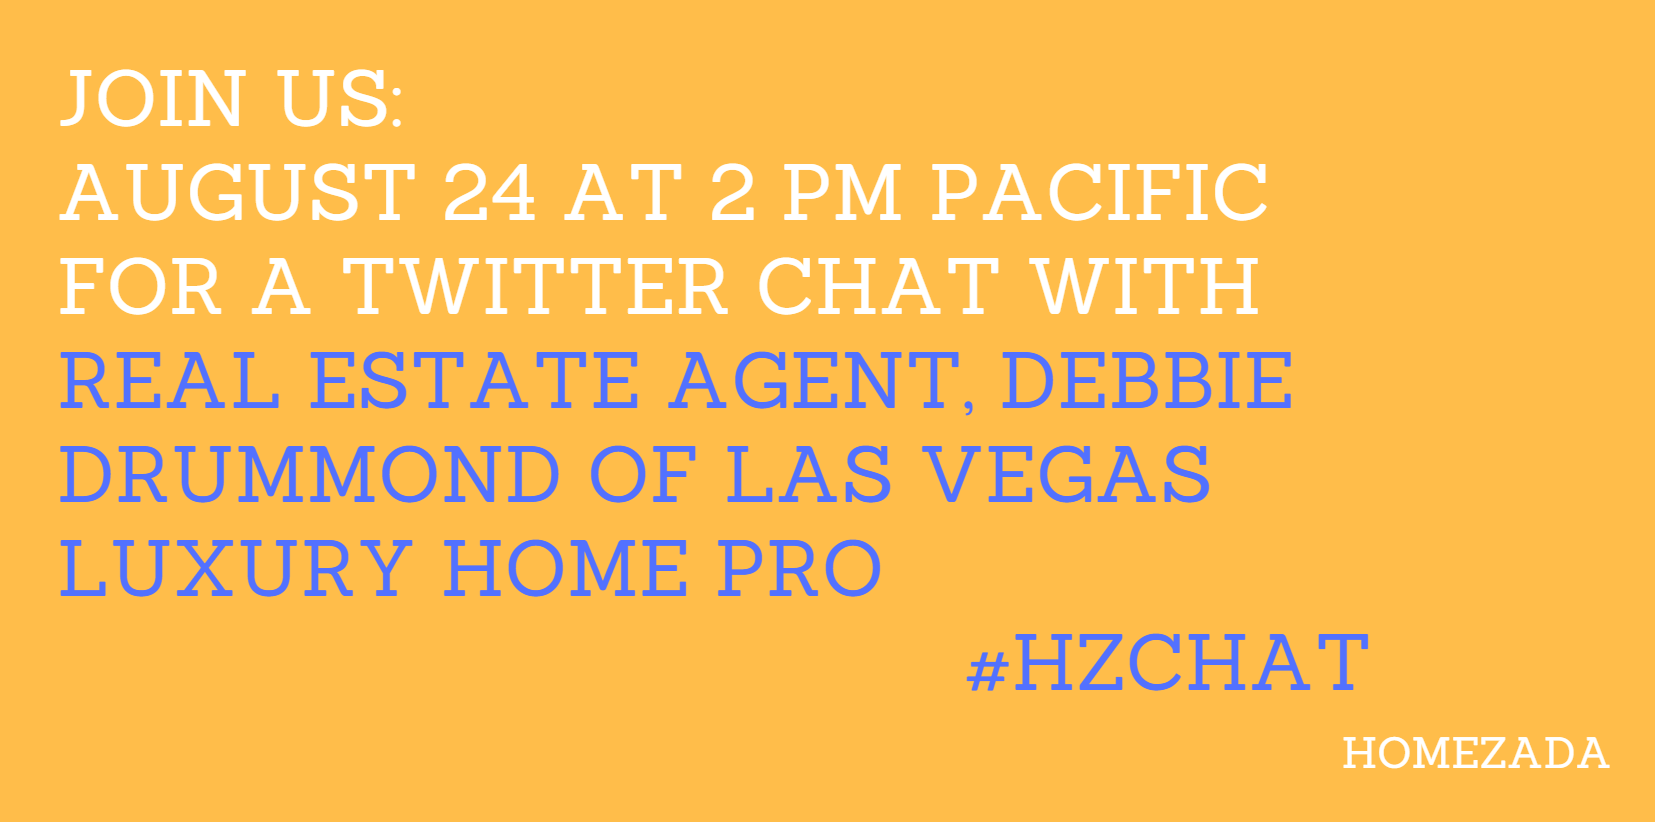 Twitter Chat with Real Estate Expert Debbie Drummond